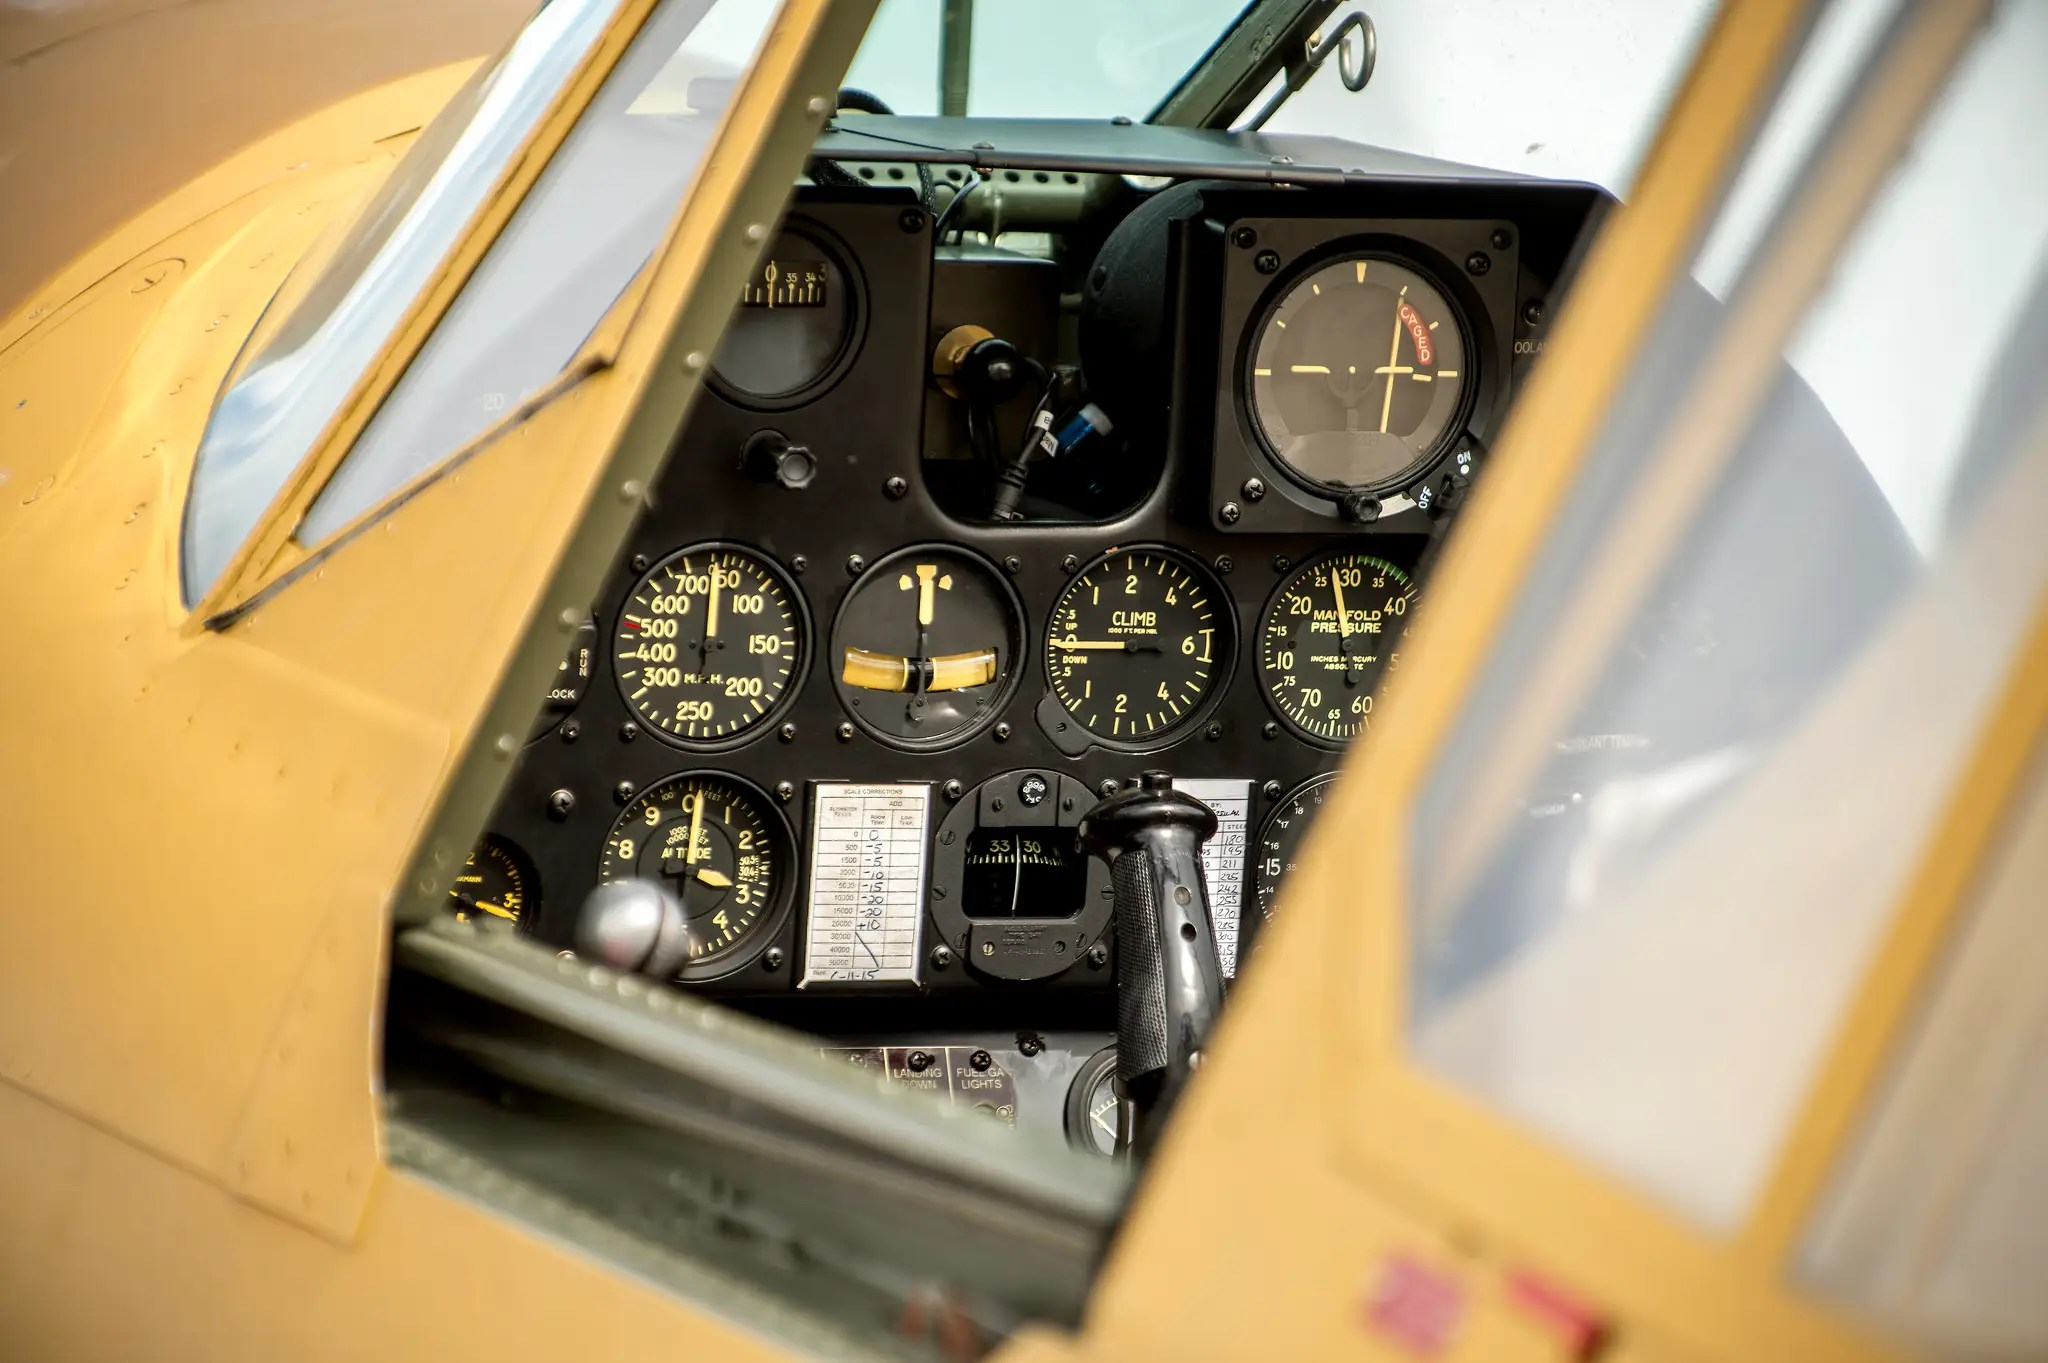 The P-40 was first produced in 1939, but thanks to the maintainers at the Air Force Heritage Flight Foundation, this cockpit looks like it just rolled off the line.